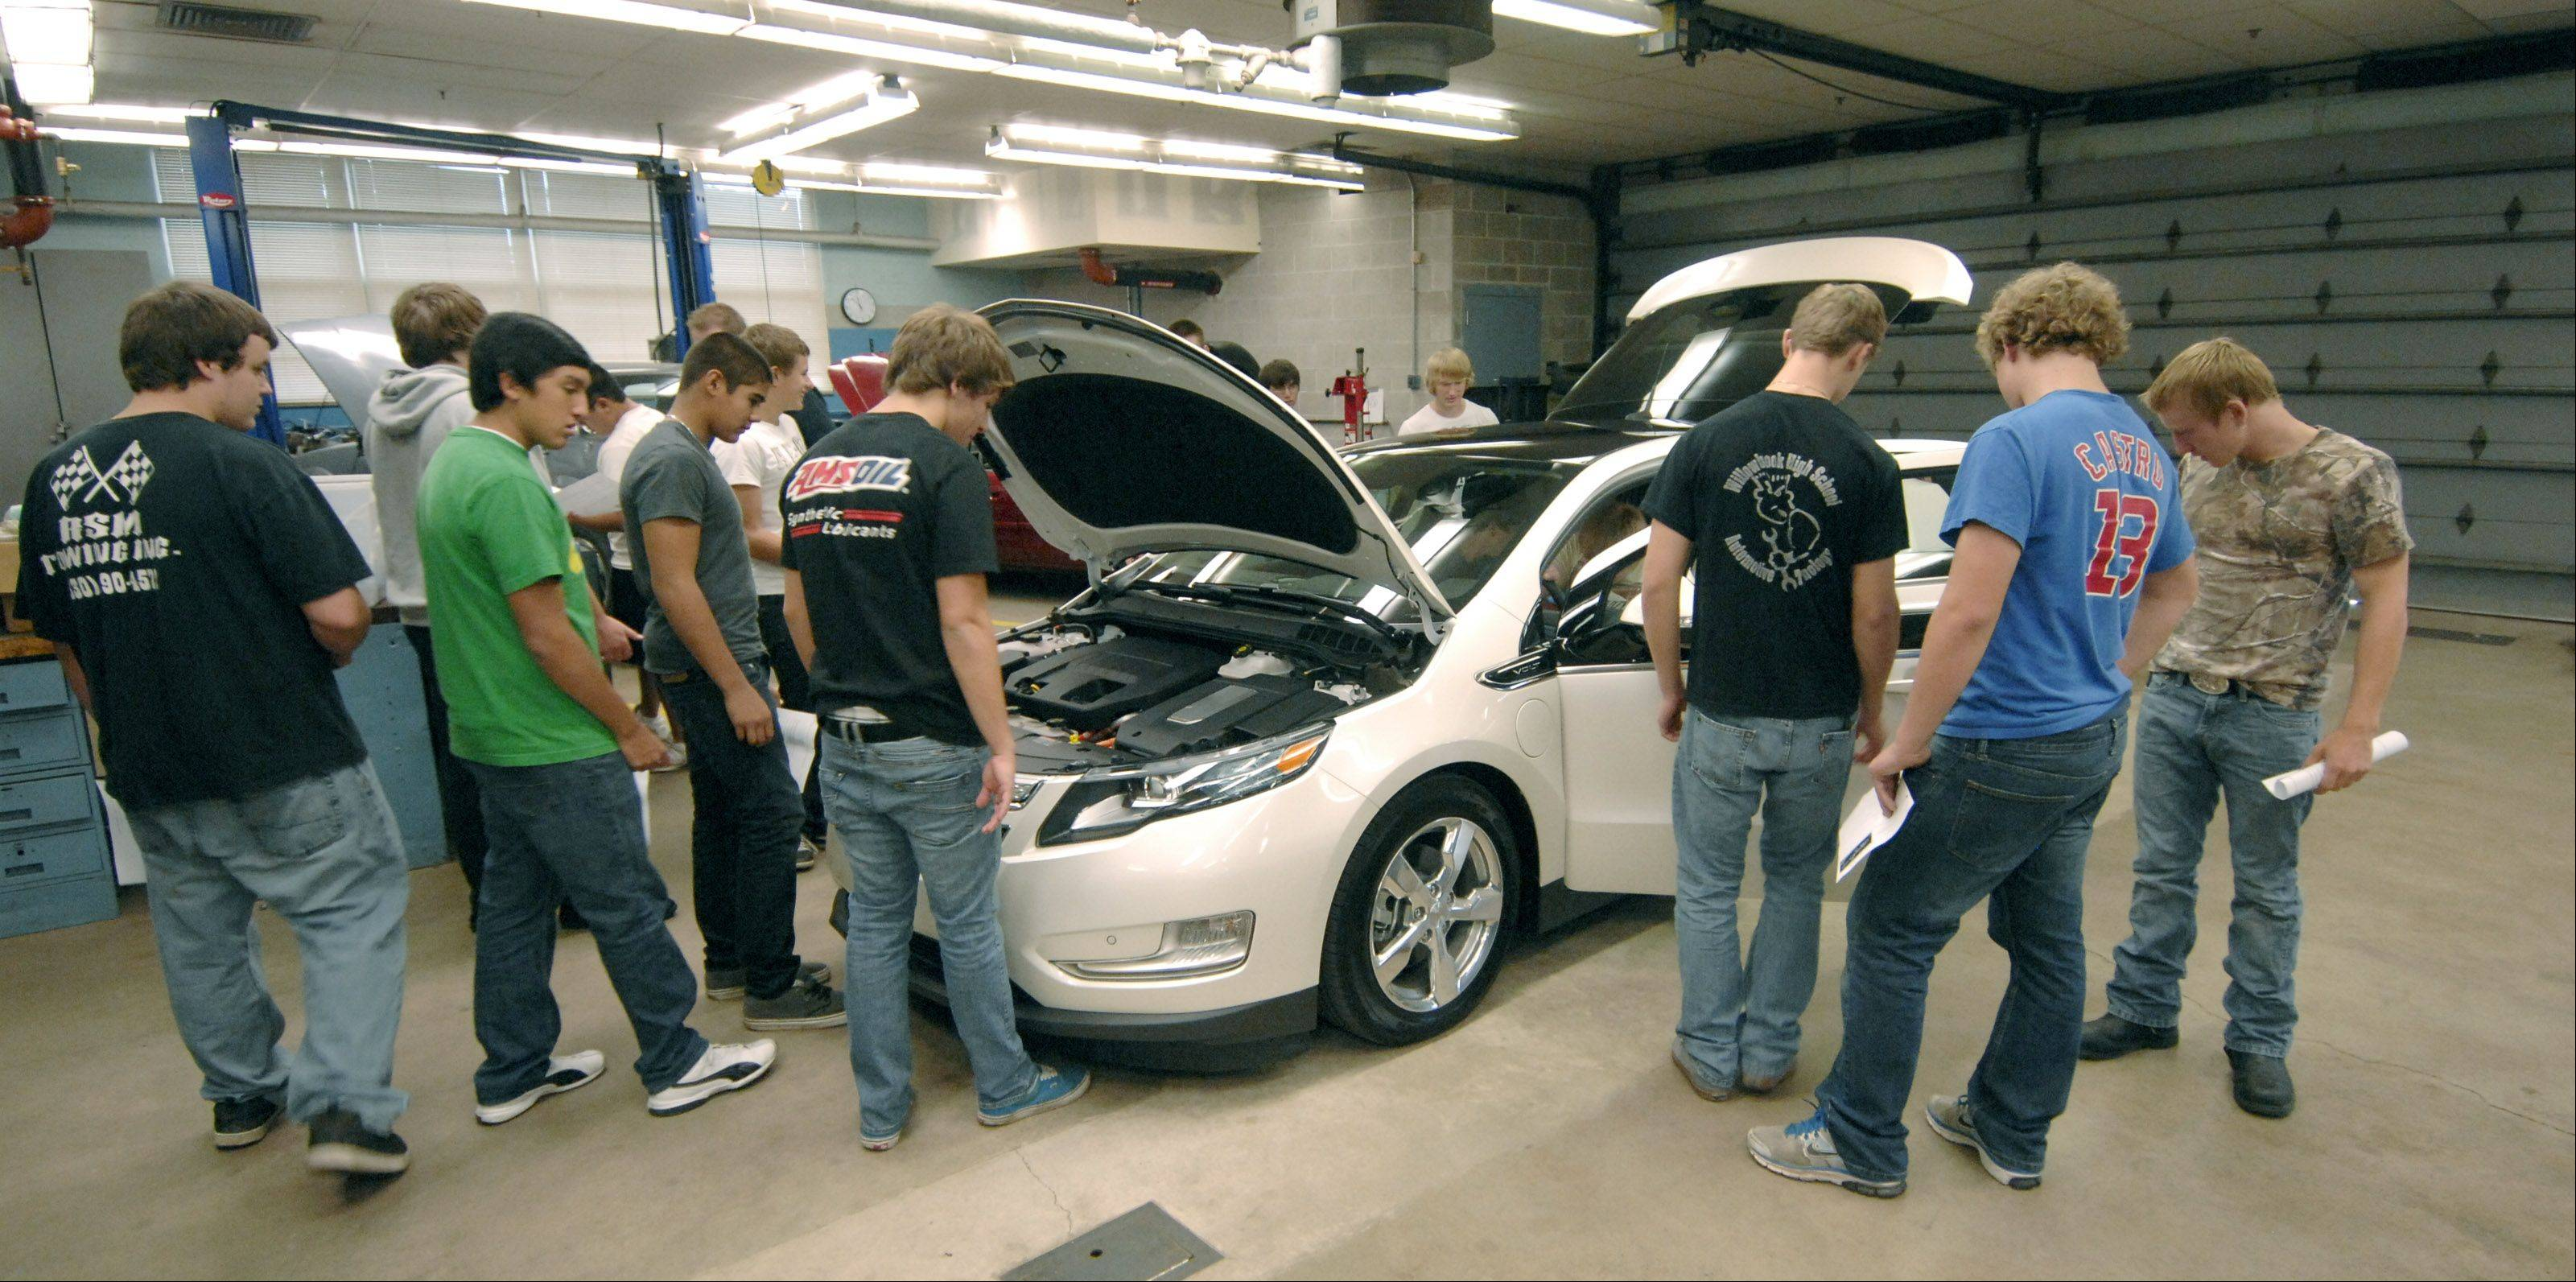 Students in an automotive technology class at Willowbrook High School in Villa Park take a close look at a Chevy Volt electric car.